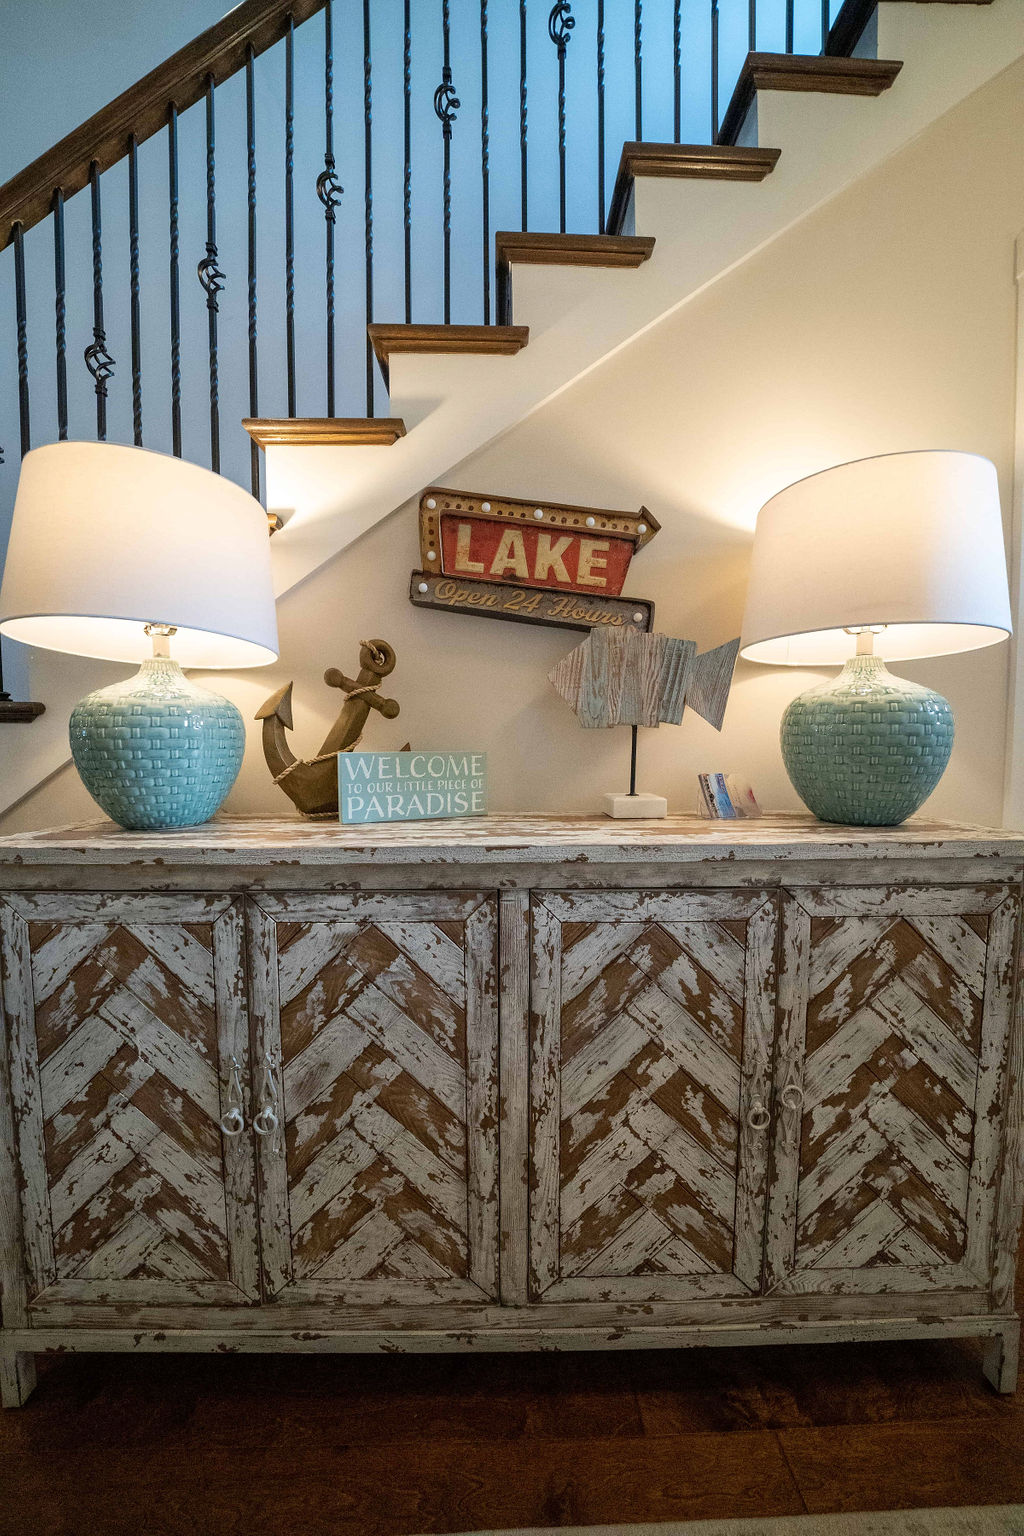 Straight-on view of sideboard in lake villa town house